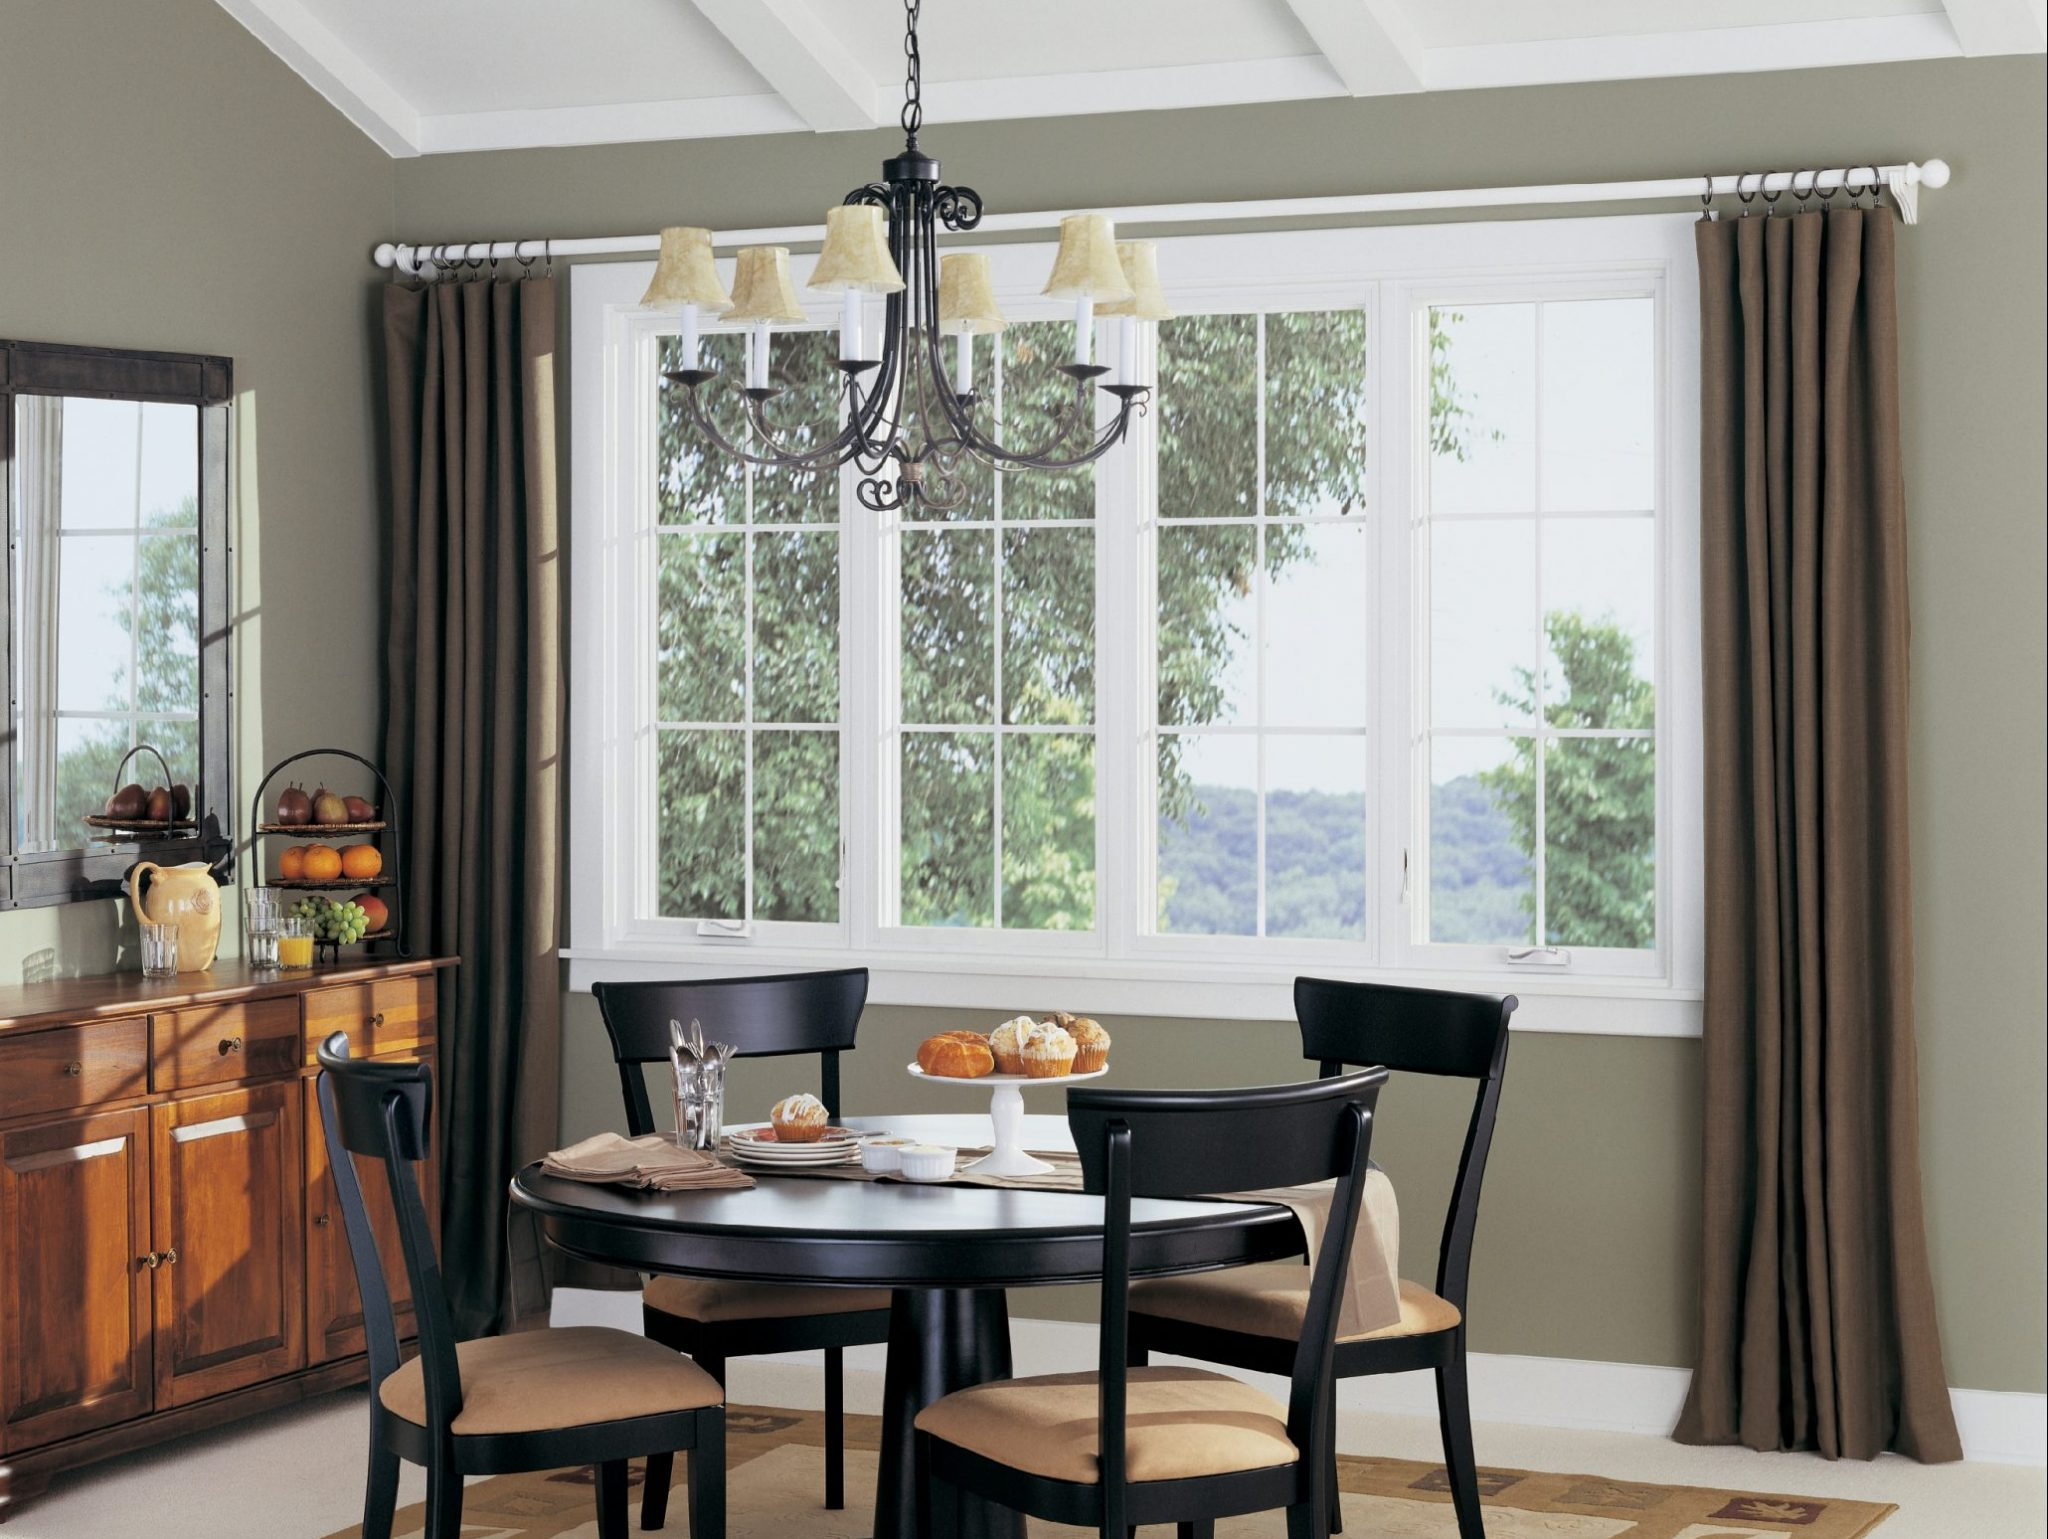 Replacement Windows in Dining Room